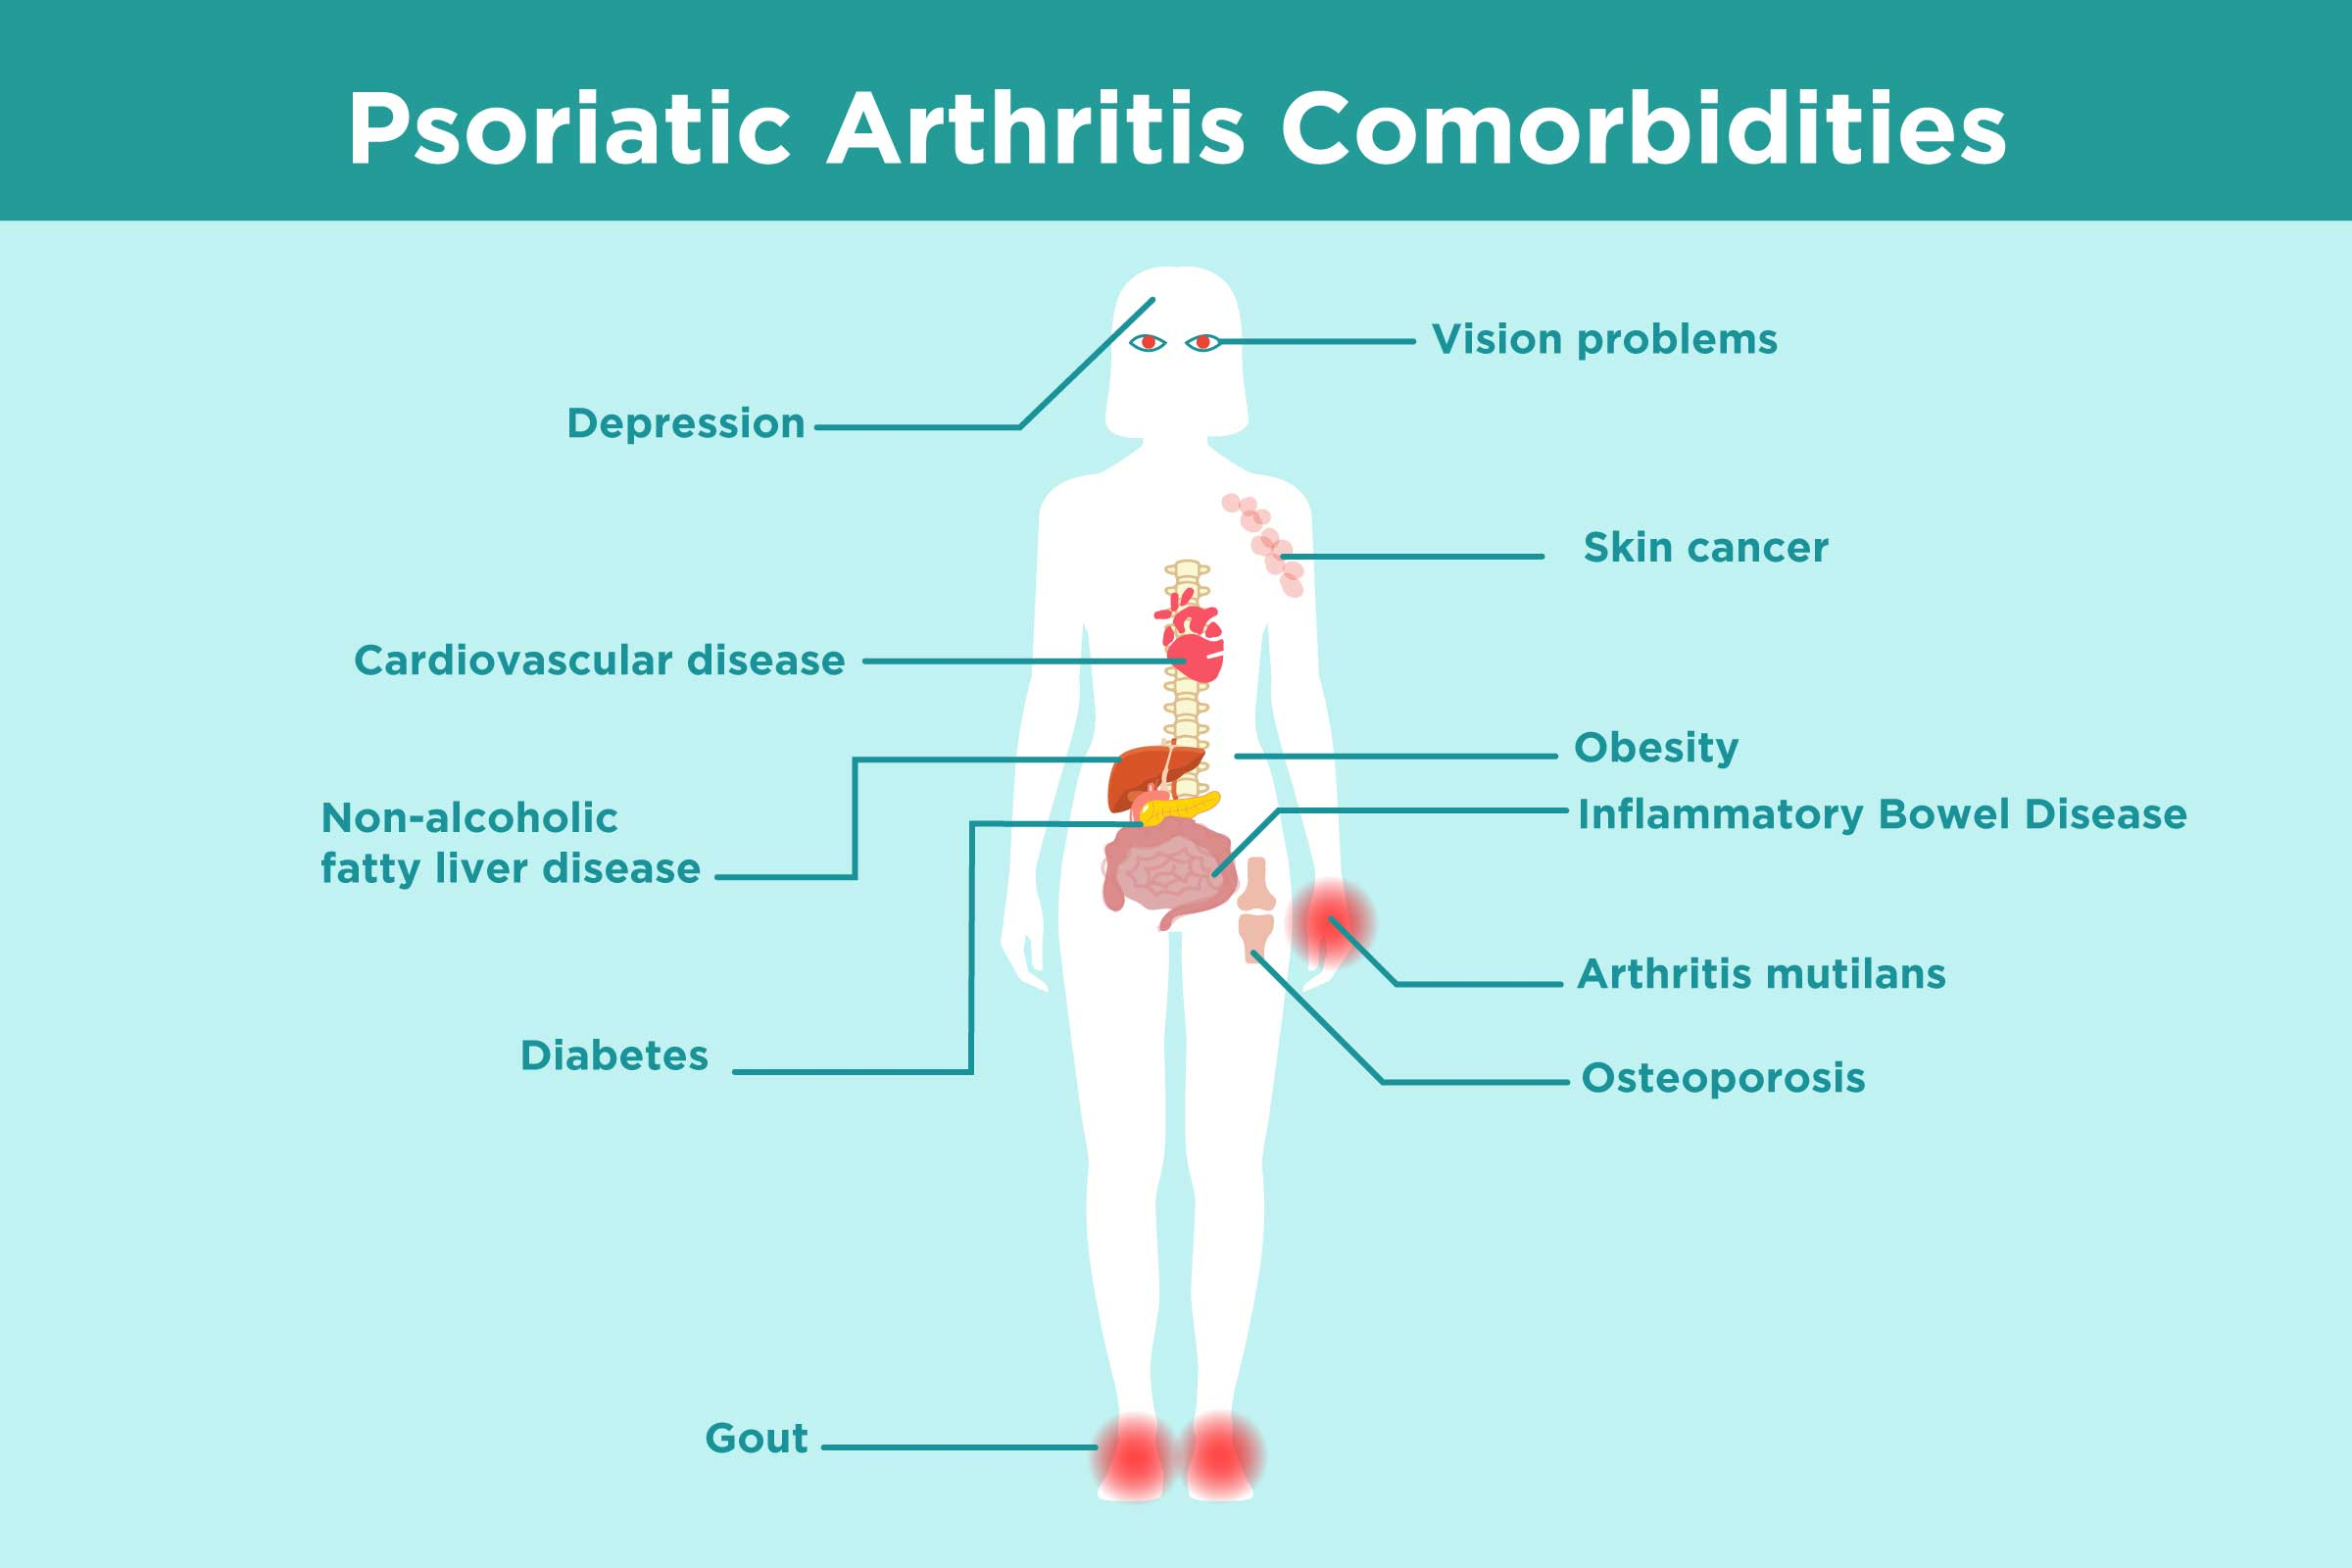 Psoriatic Arthritis Complications and Homeopathy   Saburi Solace Clinic   uveitis treatment with homeopathy in chandigarh,psoriatic arthritis treatment with homeopathy in chandigarh,cataract treatment with homeopathy in chandigarh,deformed joints with pain treatment  - GL100306